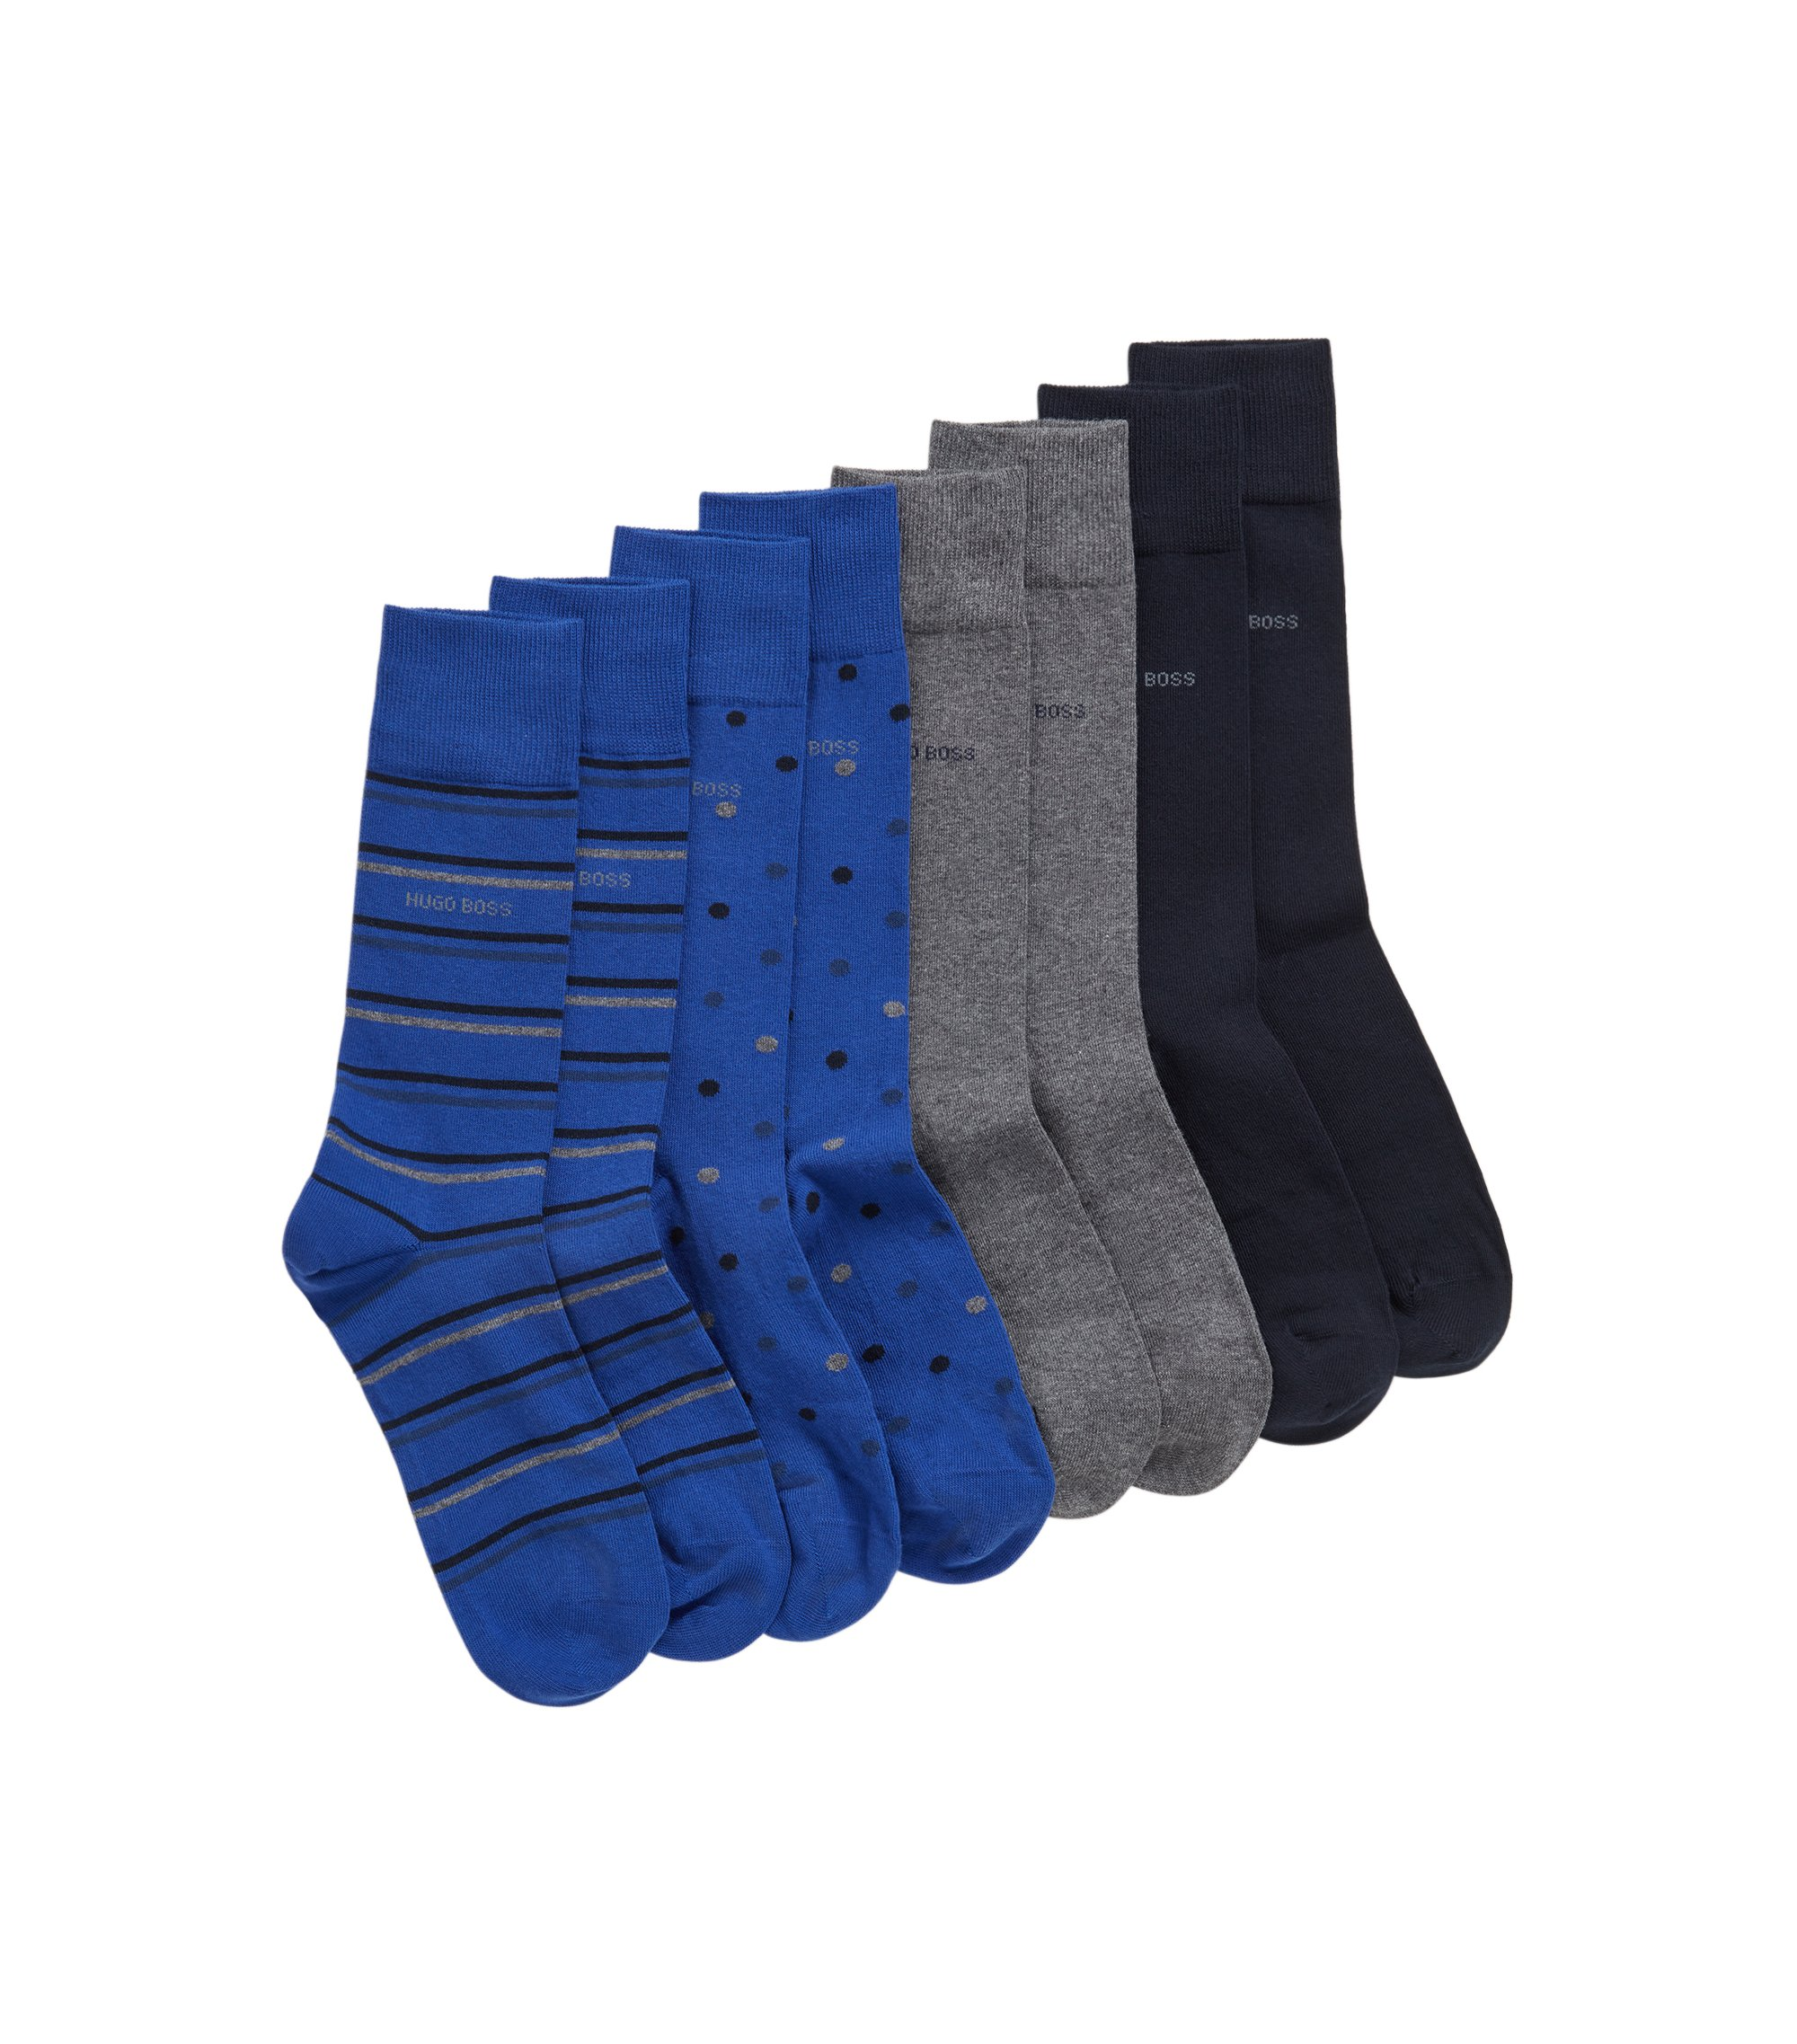 Four-pack of socks in metal gift box, Dark Blue